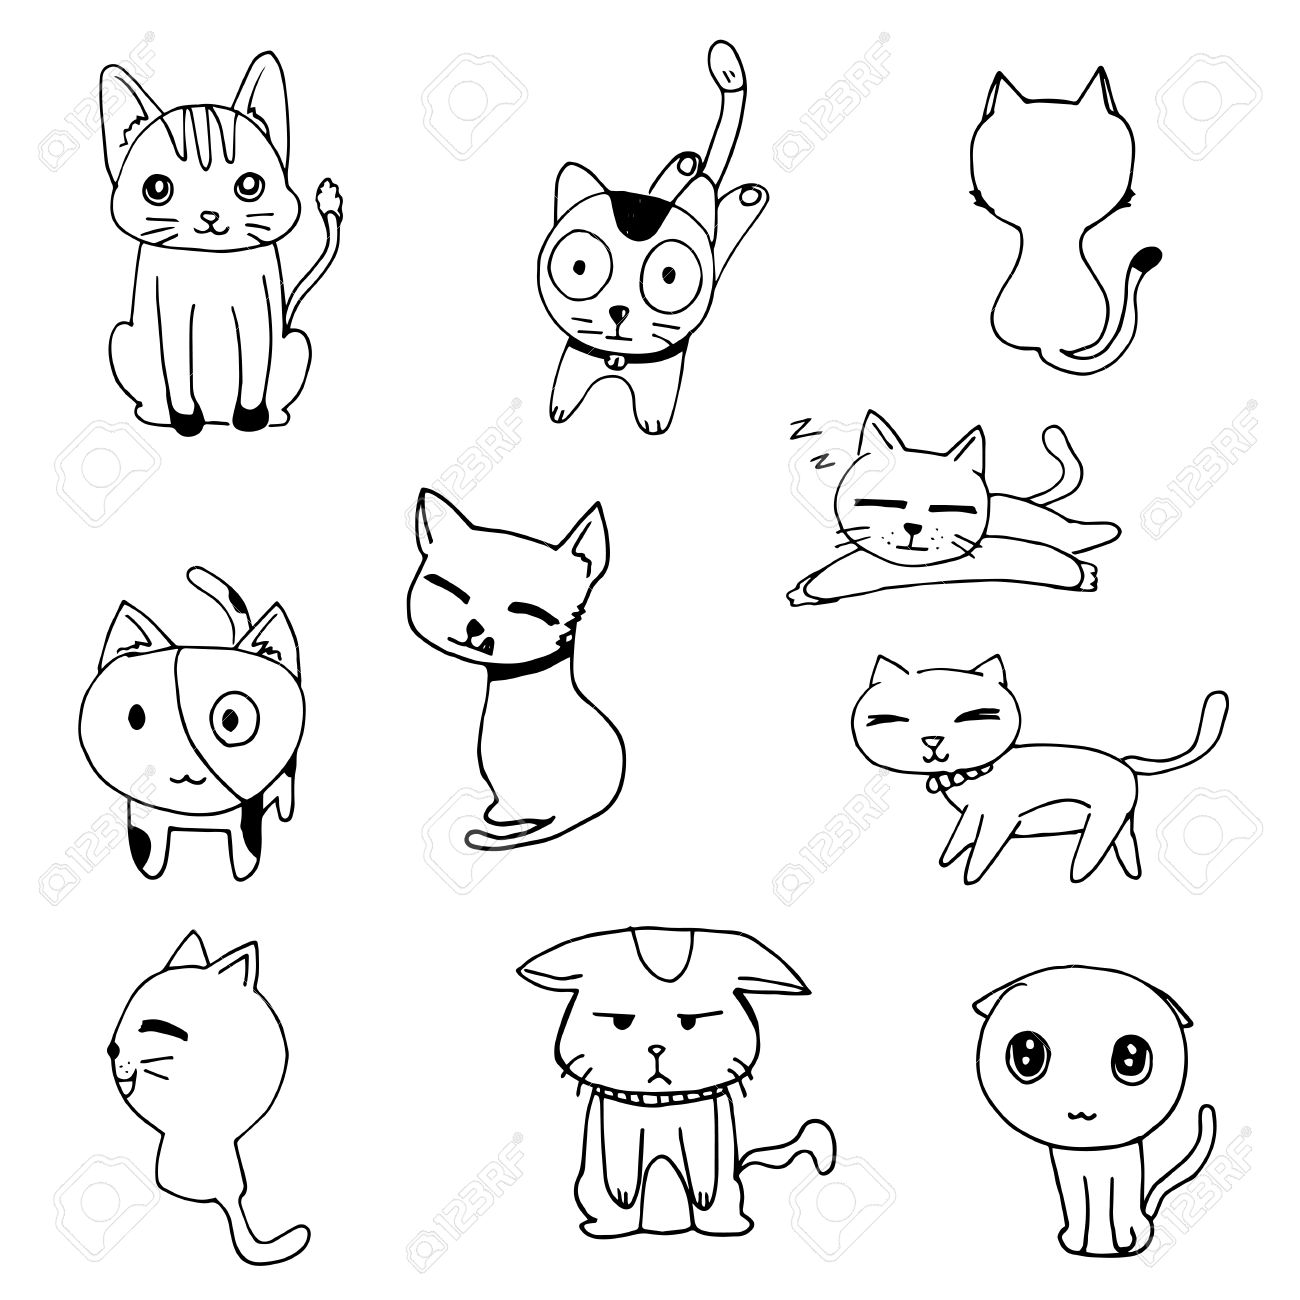 1300x1300 Cat Doodle Drawing A Vector On White Background, Set Of Black